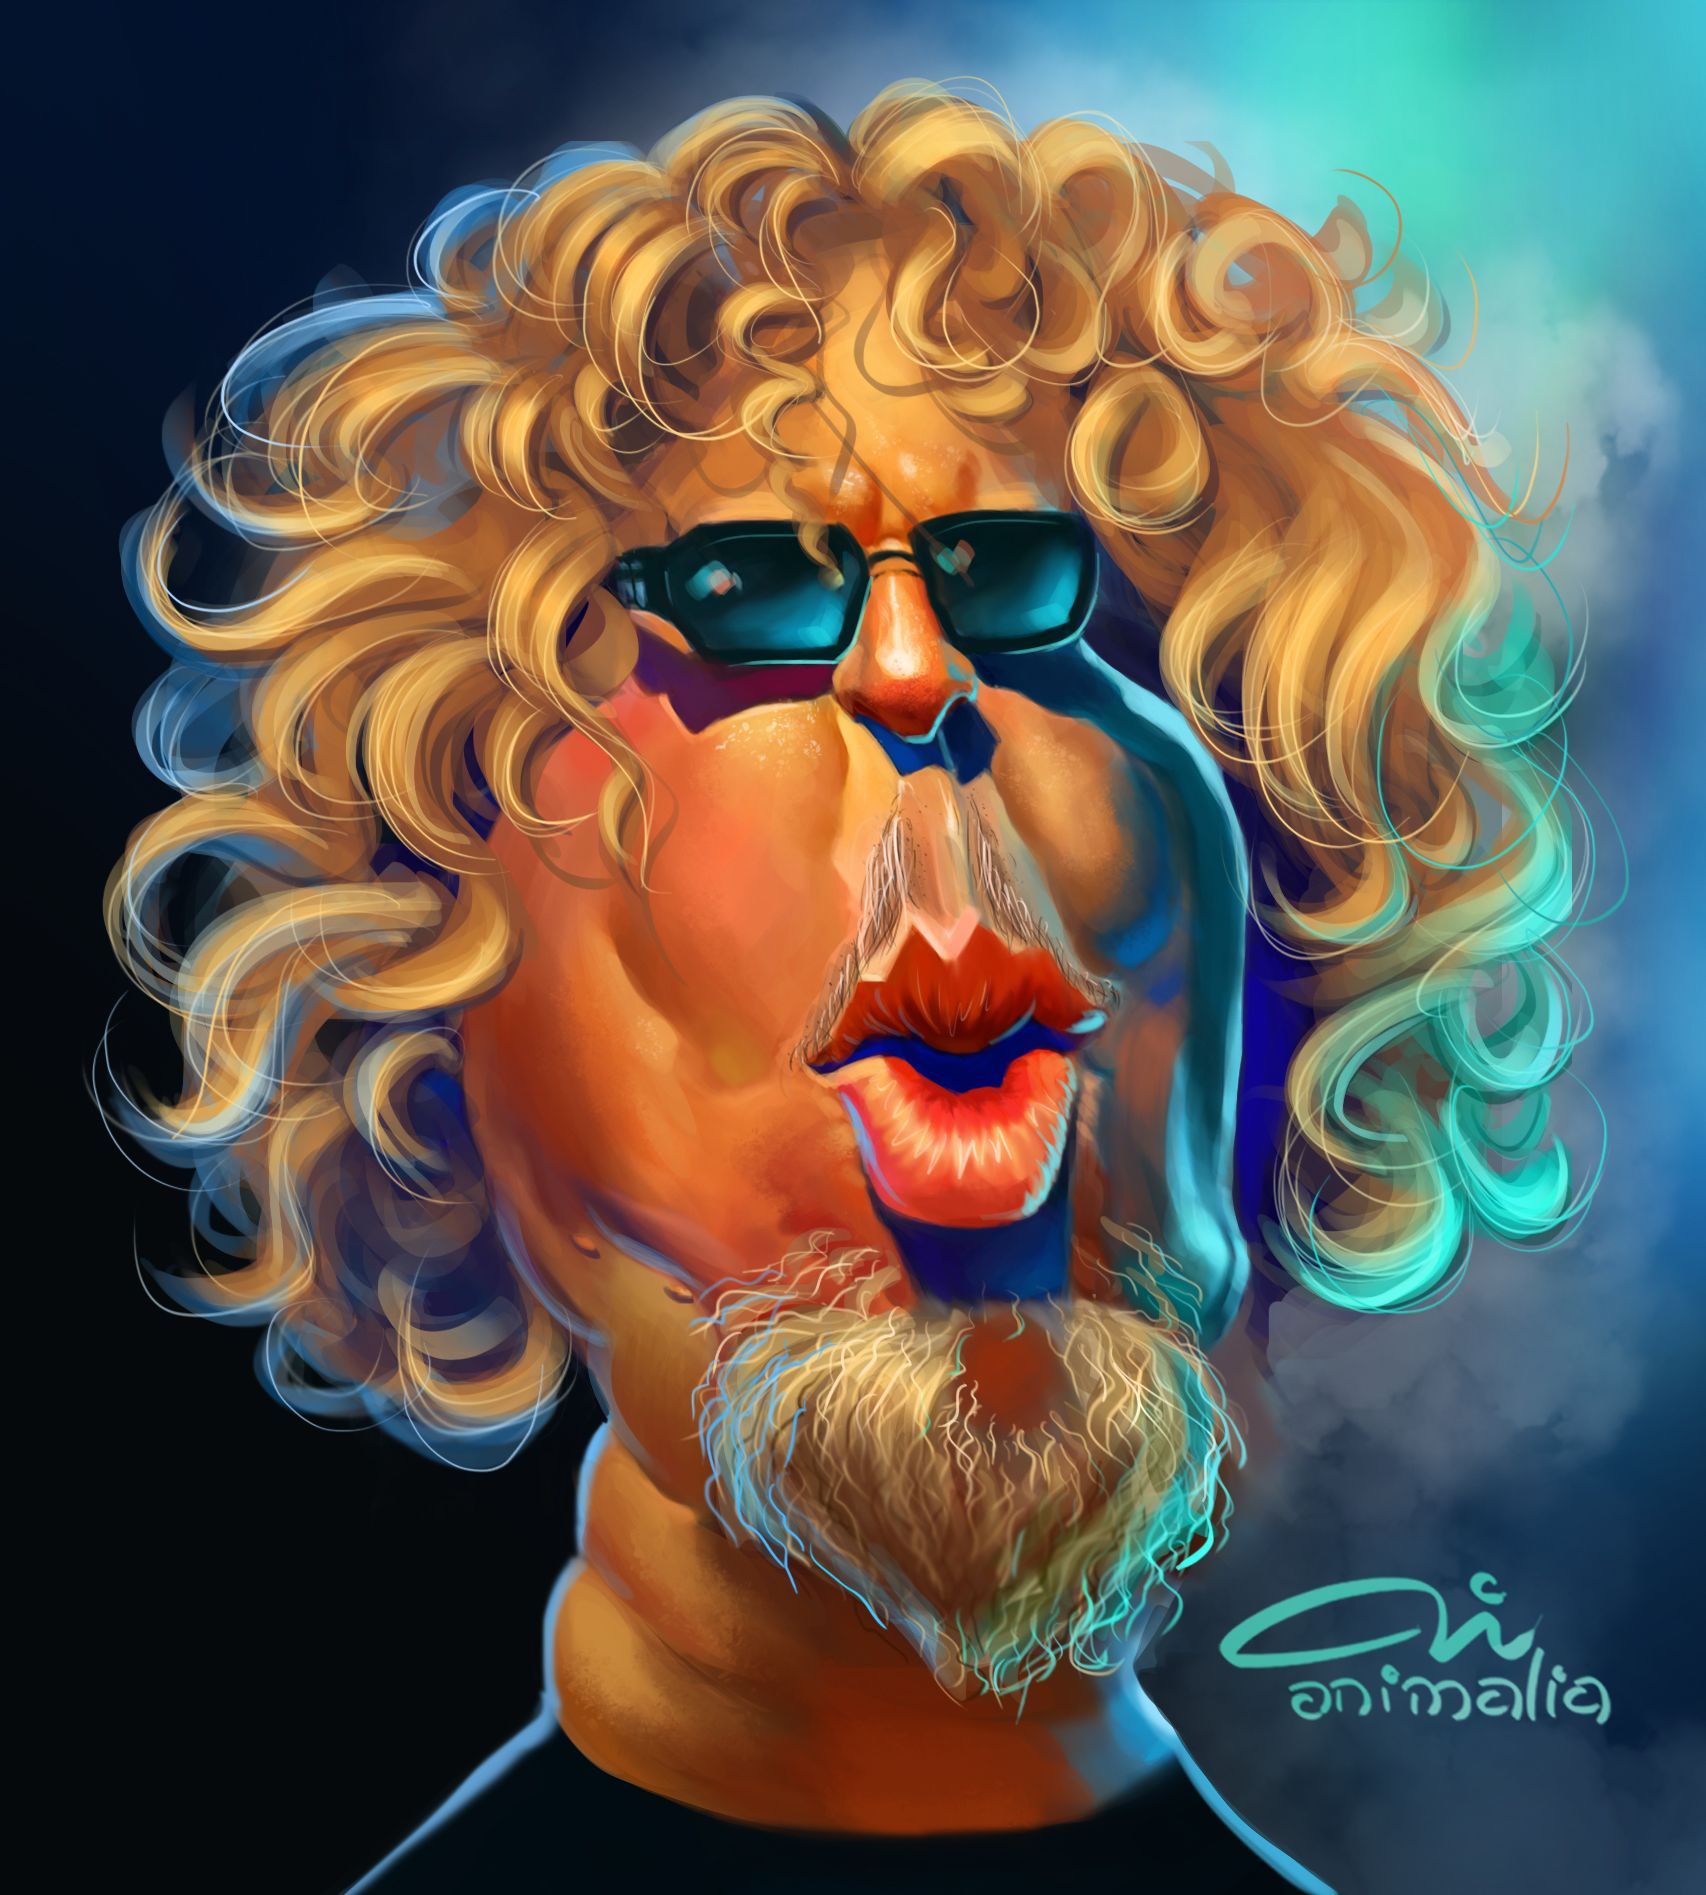 Caricature Sammy Hagar By Ti Animalia Caricature My Arts Skeletor